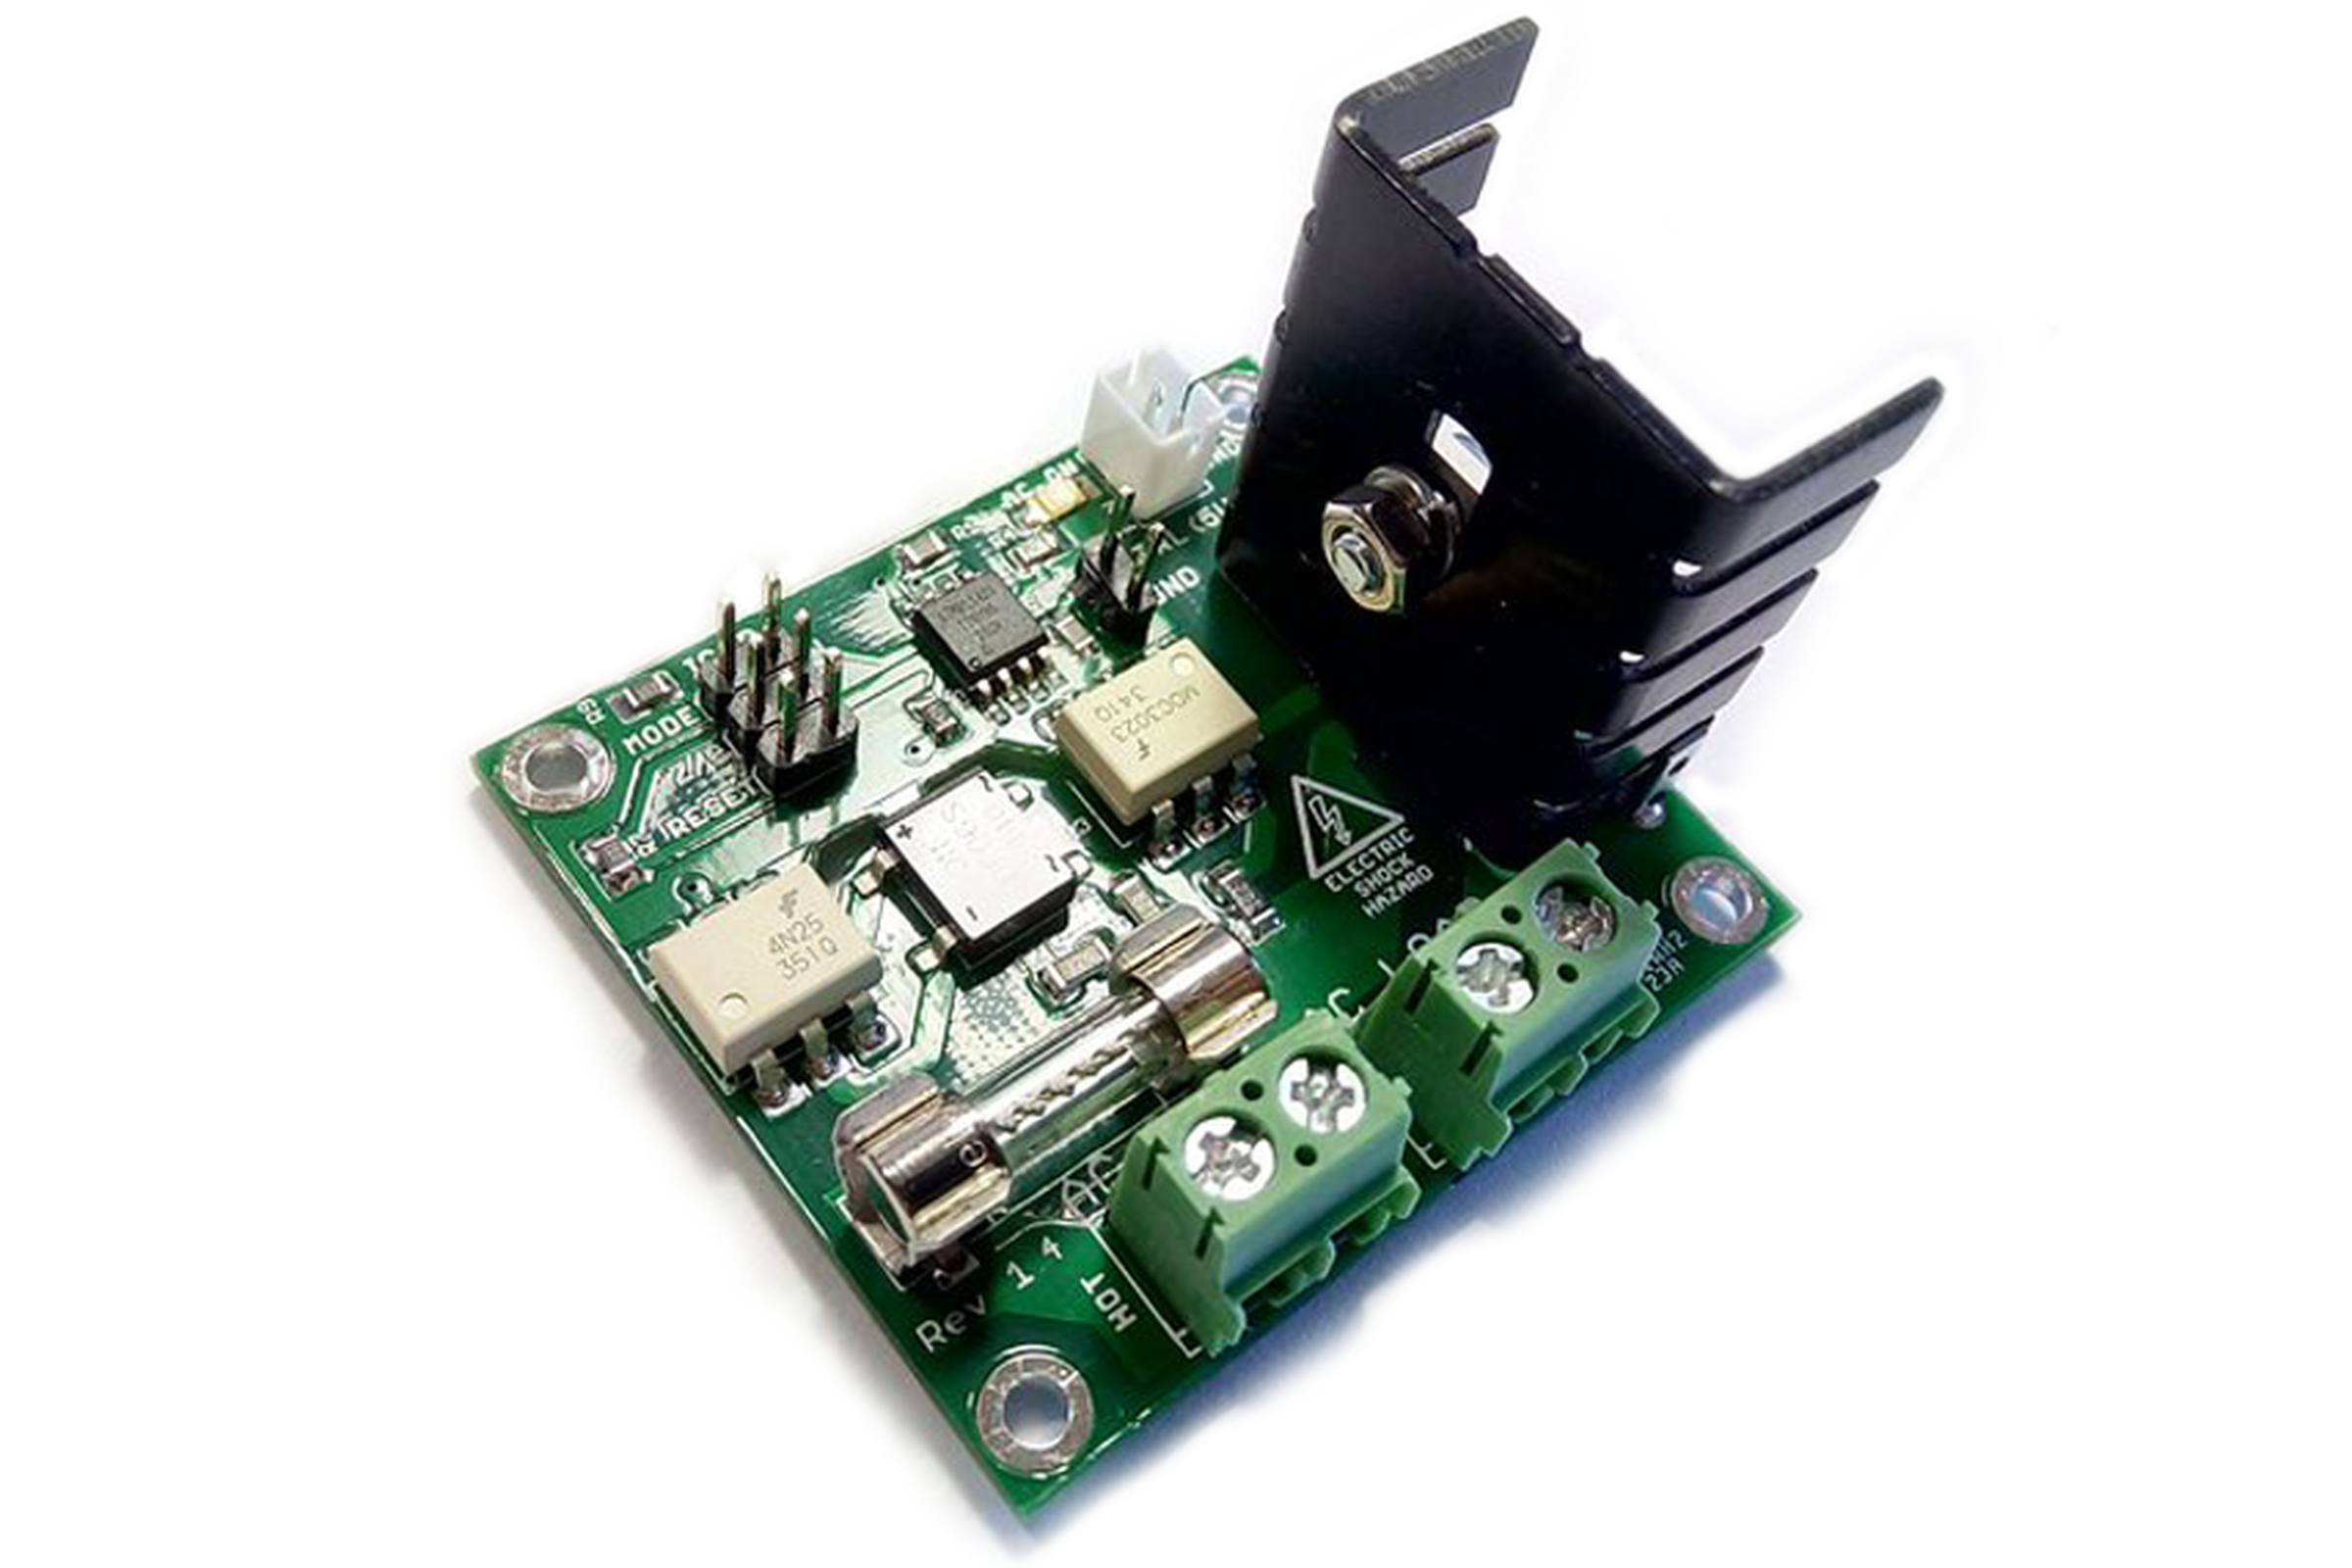 Ac 60hz 50hz Dimmer Ssr Controller Board From Thewp122 On Tindie Fan Speed Control All About Circuits Forum 1